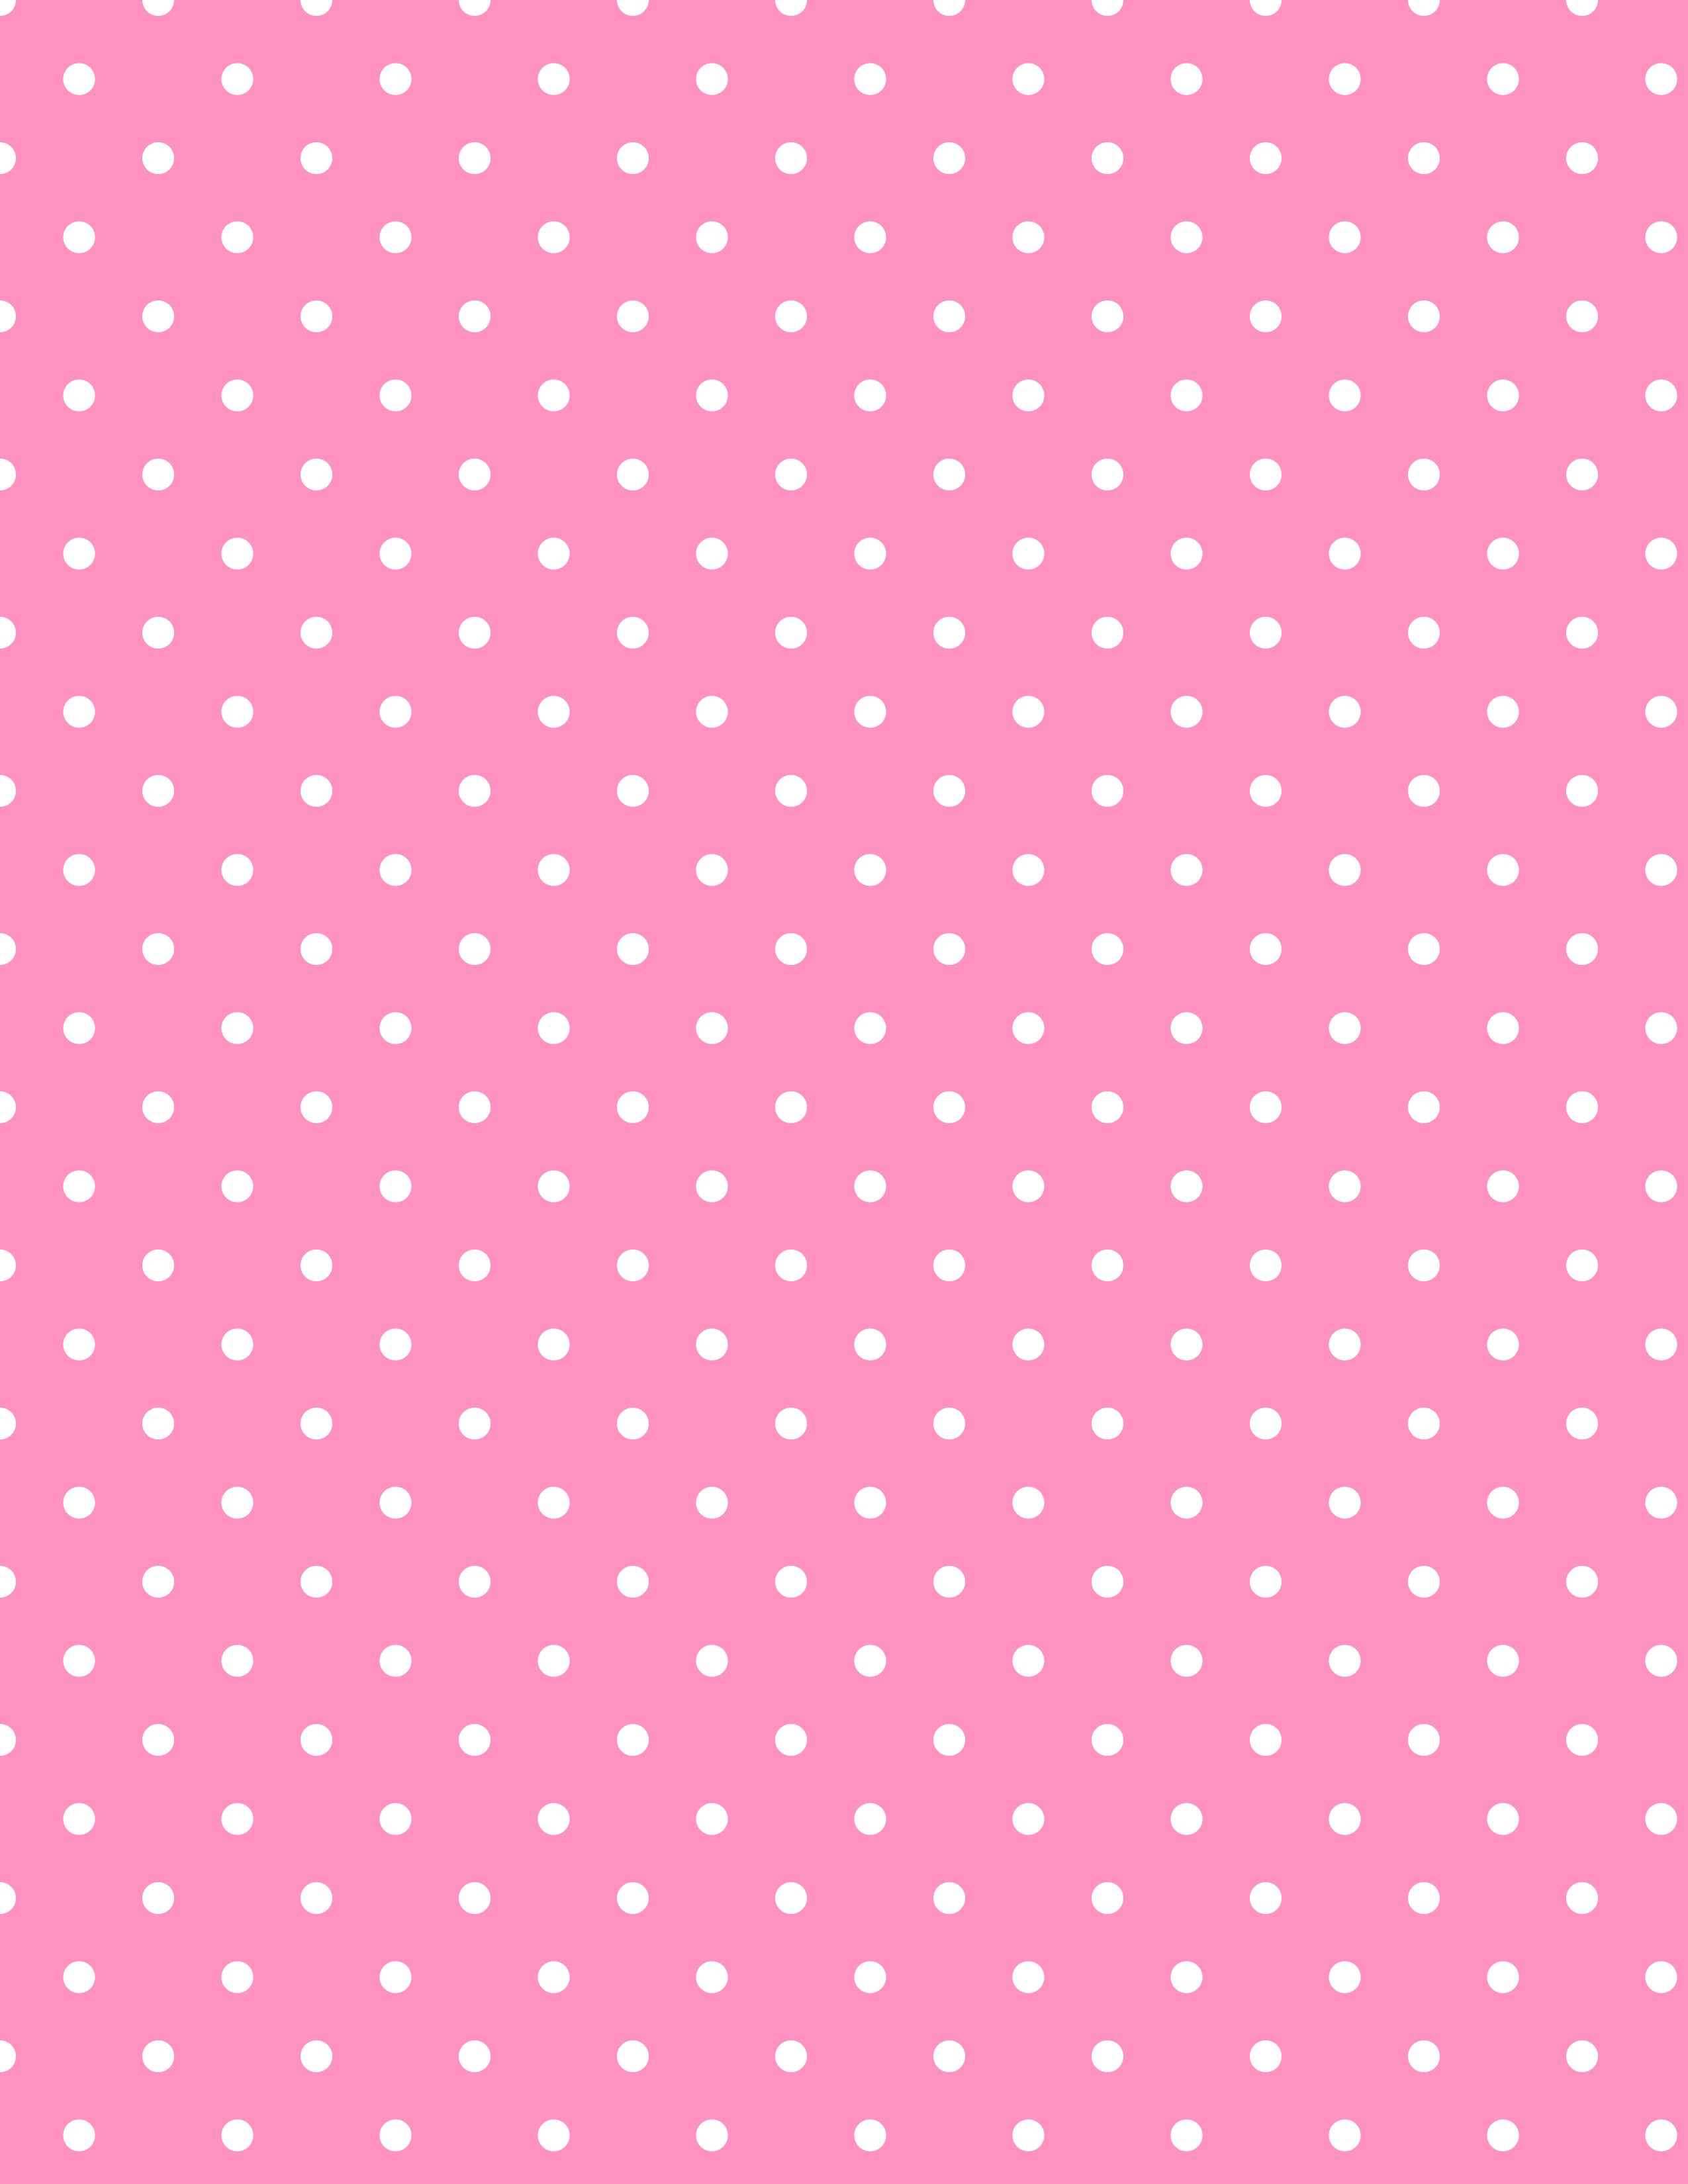 pink white patterned polka dots pictures wallpaper #3422